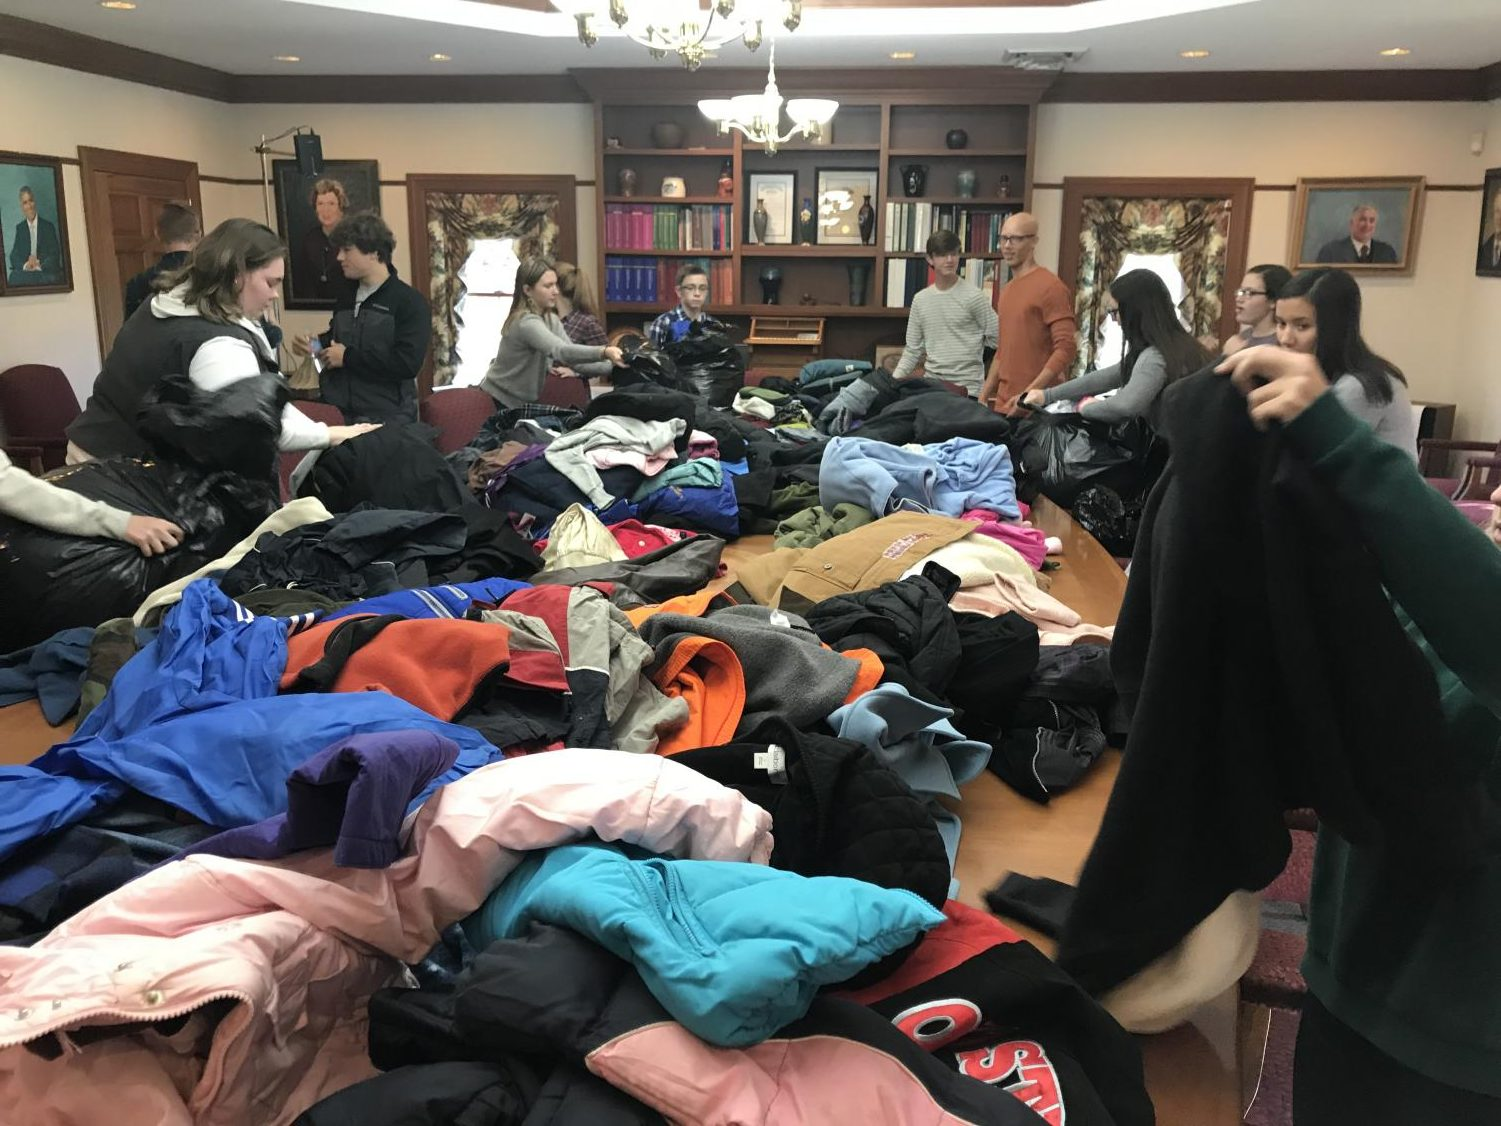 CYF members sorting through donated winter items at the conclusion of the 2018 CYF Winter Coat Drive | Photo provided by the Community Youth Foundation